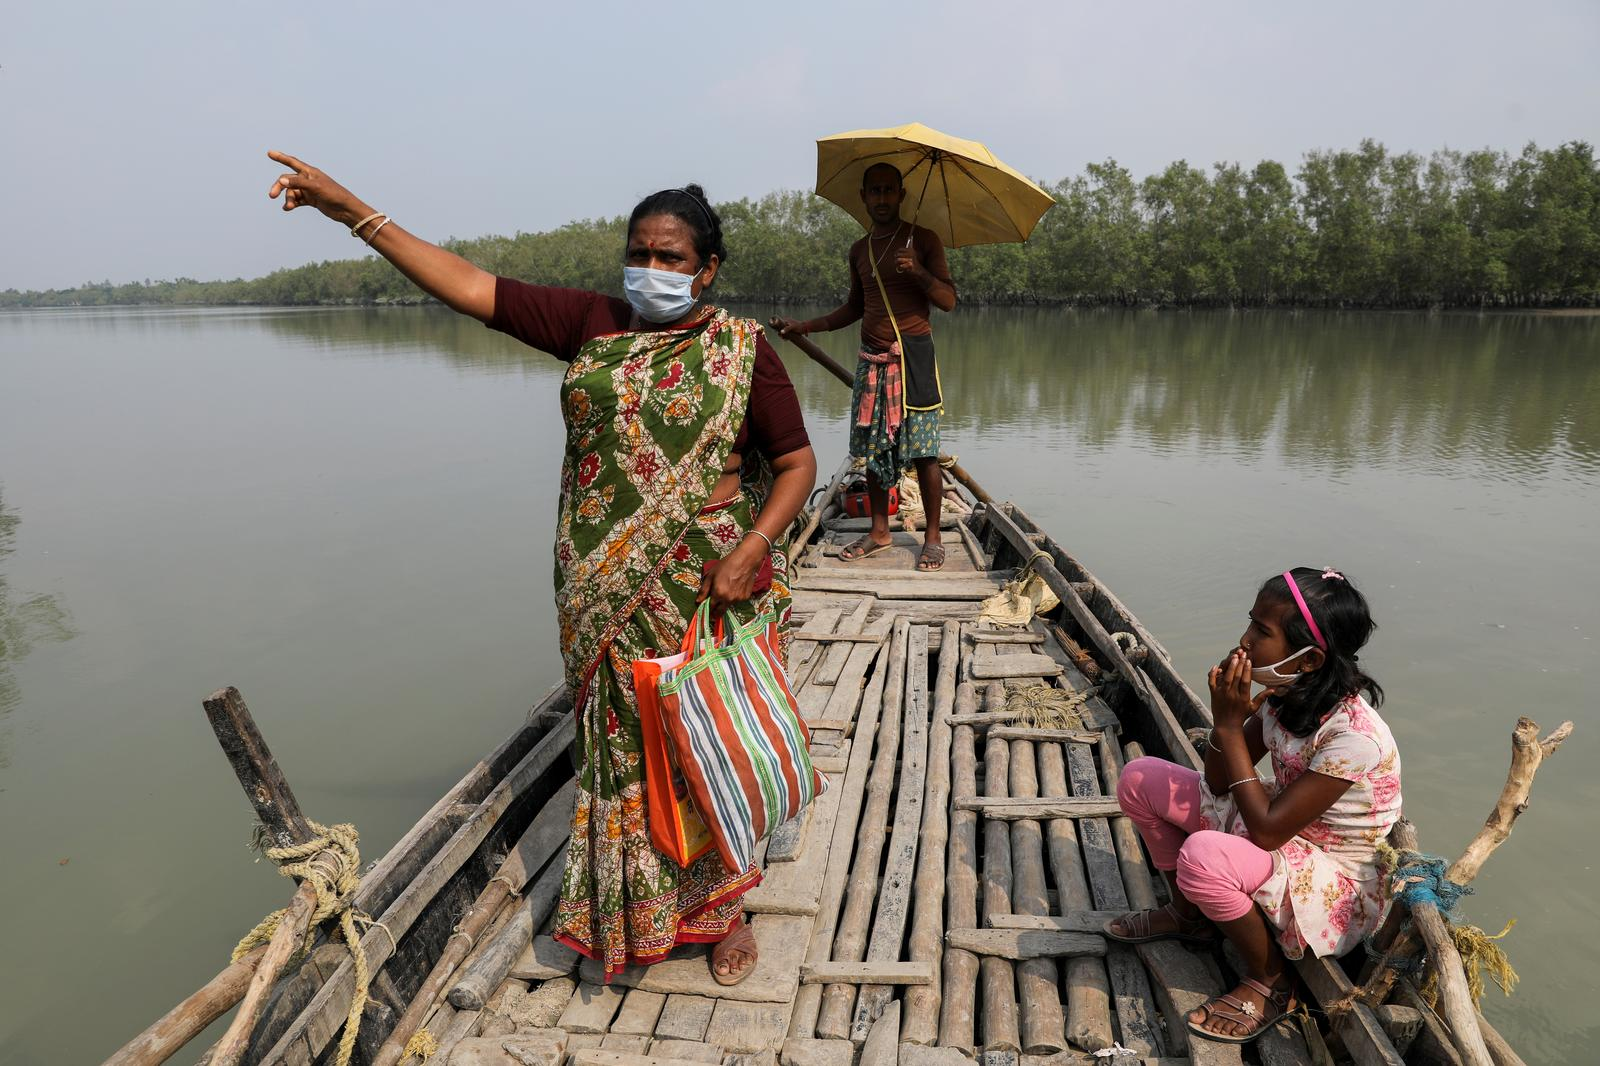 Tigers stalk as storms, poverty force Indians deep into mangrove forests